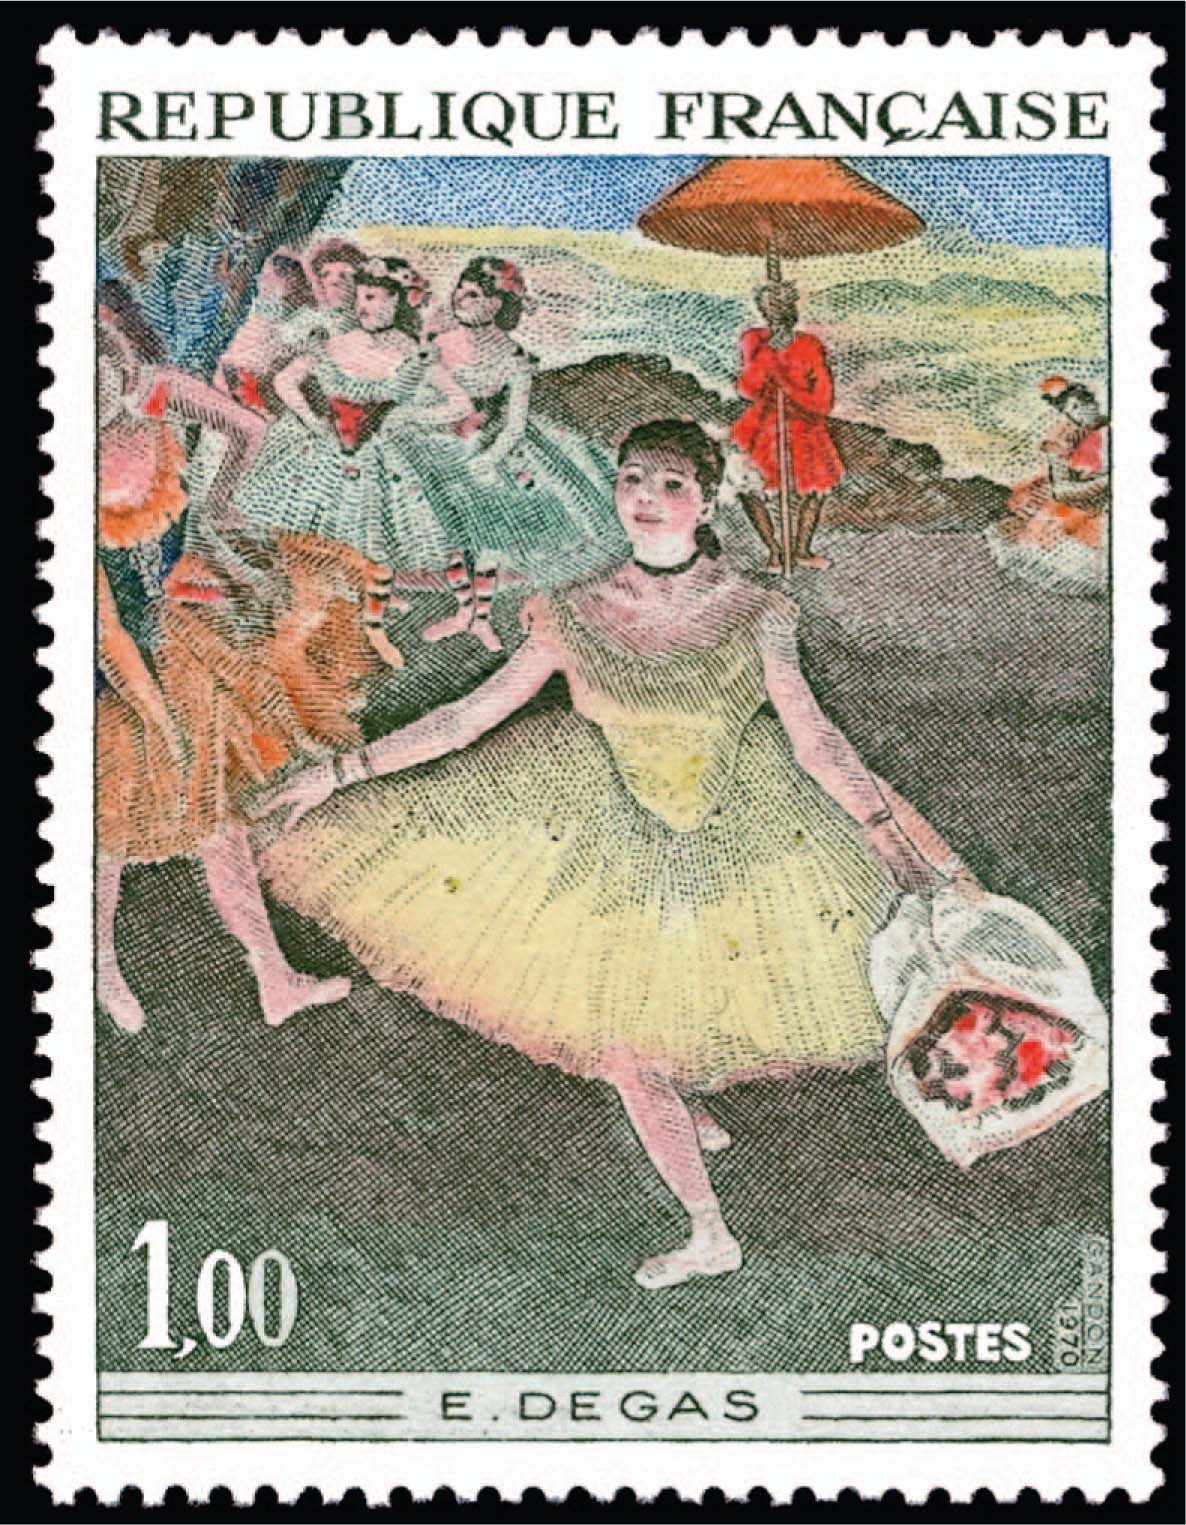 This Stamp of a Degas Painting Illustrates One Kind of Physical Activity that Adolescents May Be Involved in that Can Lead to Physical and Psychologic Issues.